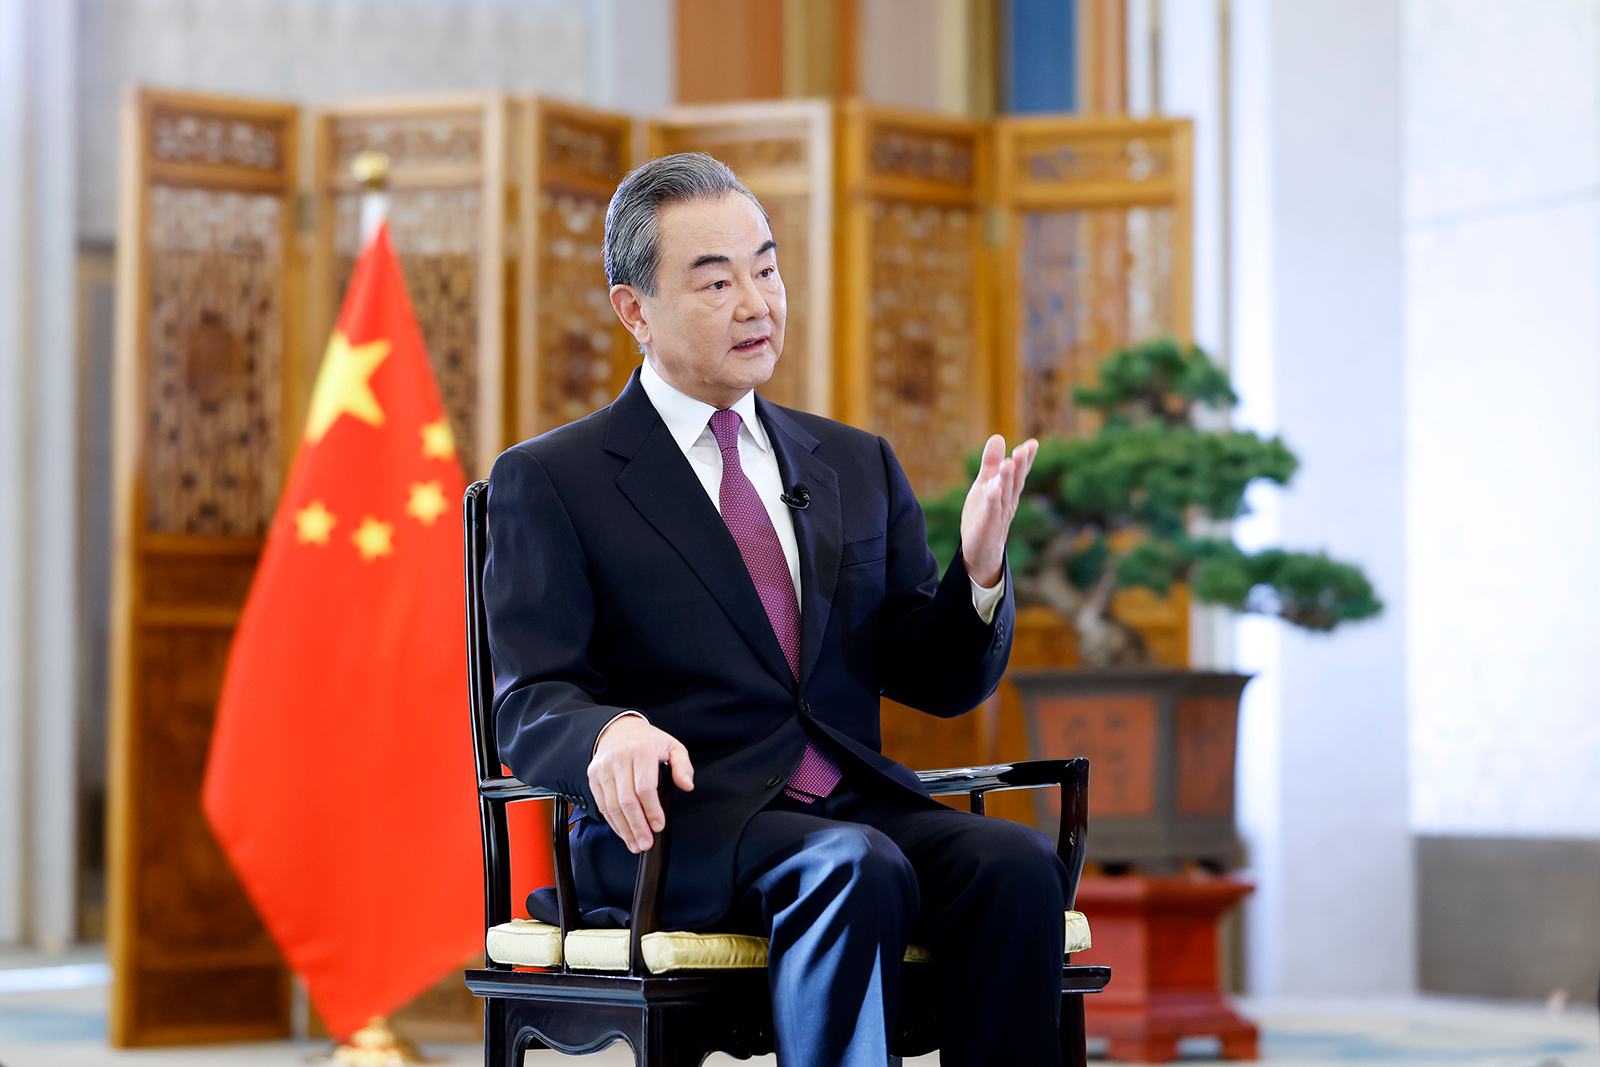 Chinese State Councilor and Foreign Minister Wang Yi is seen in a recent interview with Xinhua News Agency and China Media Group in Beijing, on December 31, 2020.